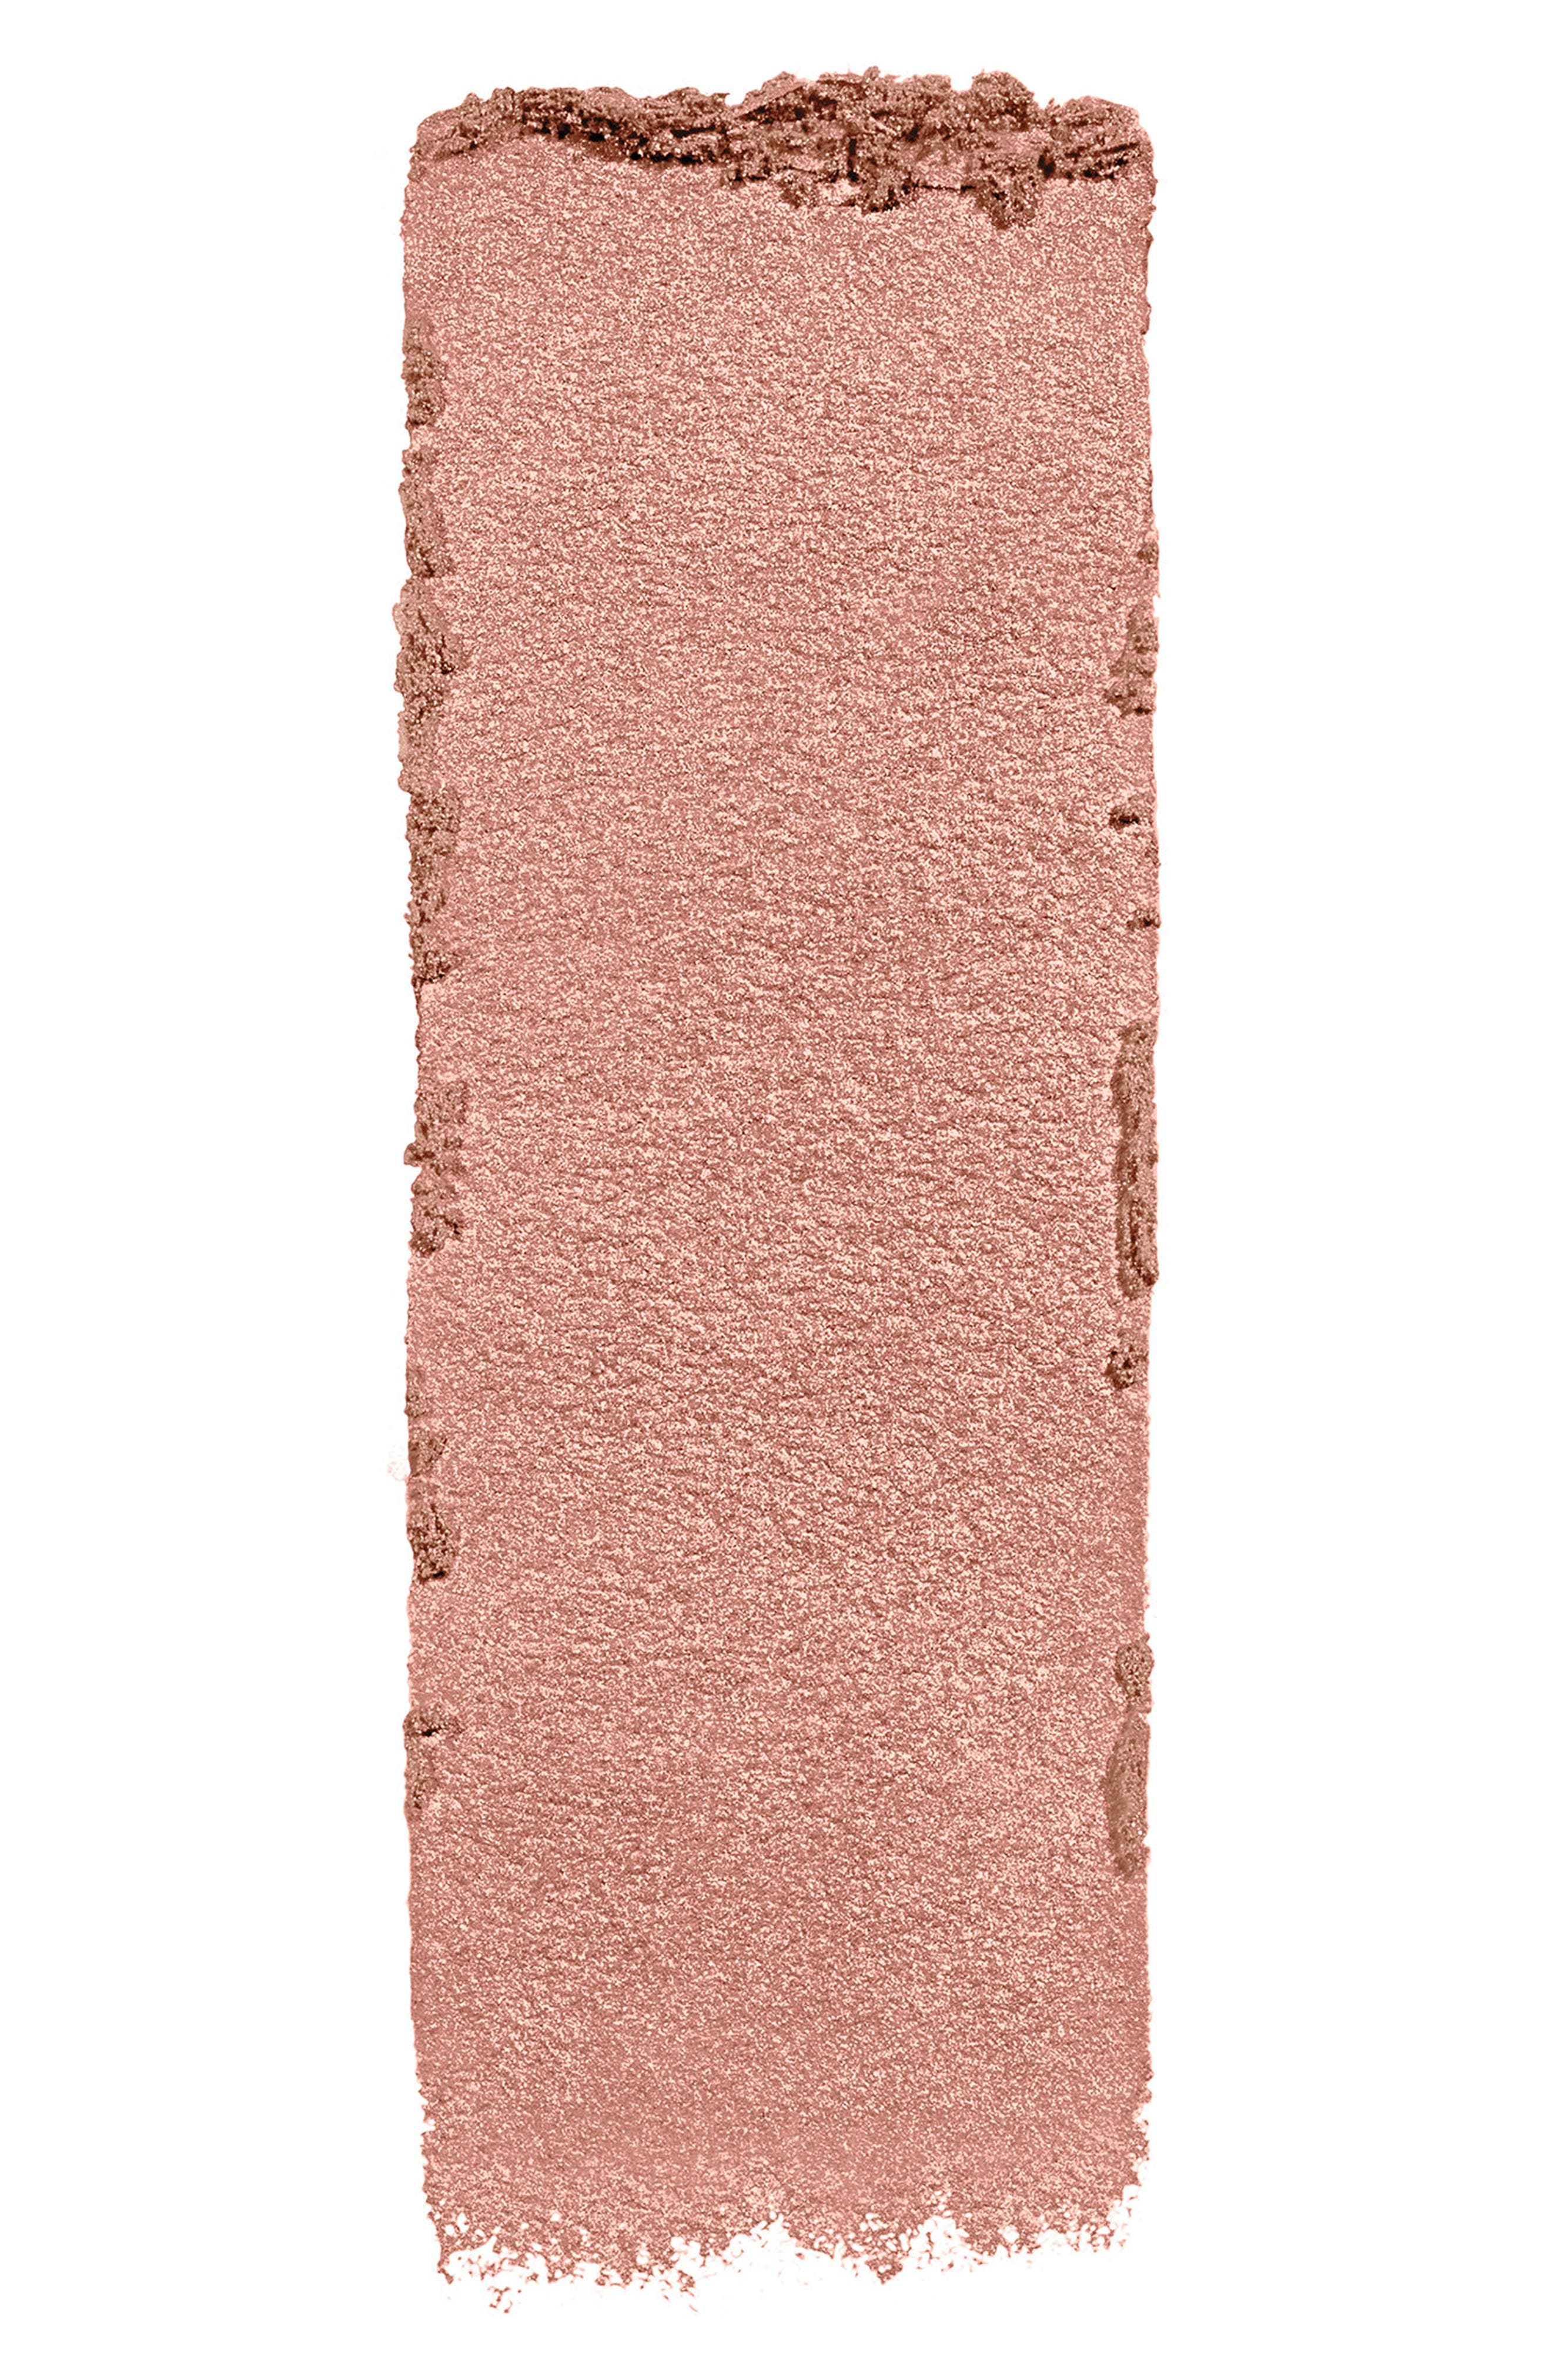 NARSissist Wanted Cheek Palette II,                             Alternate thumbnail 12, color,                             Medium To Dark